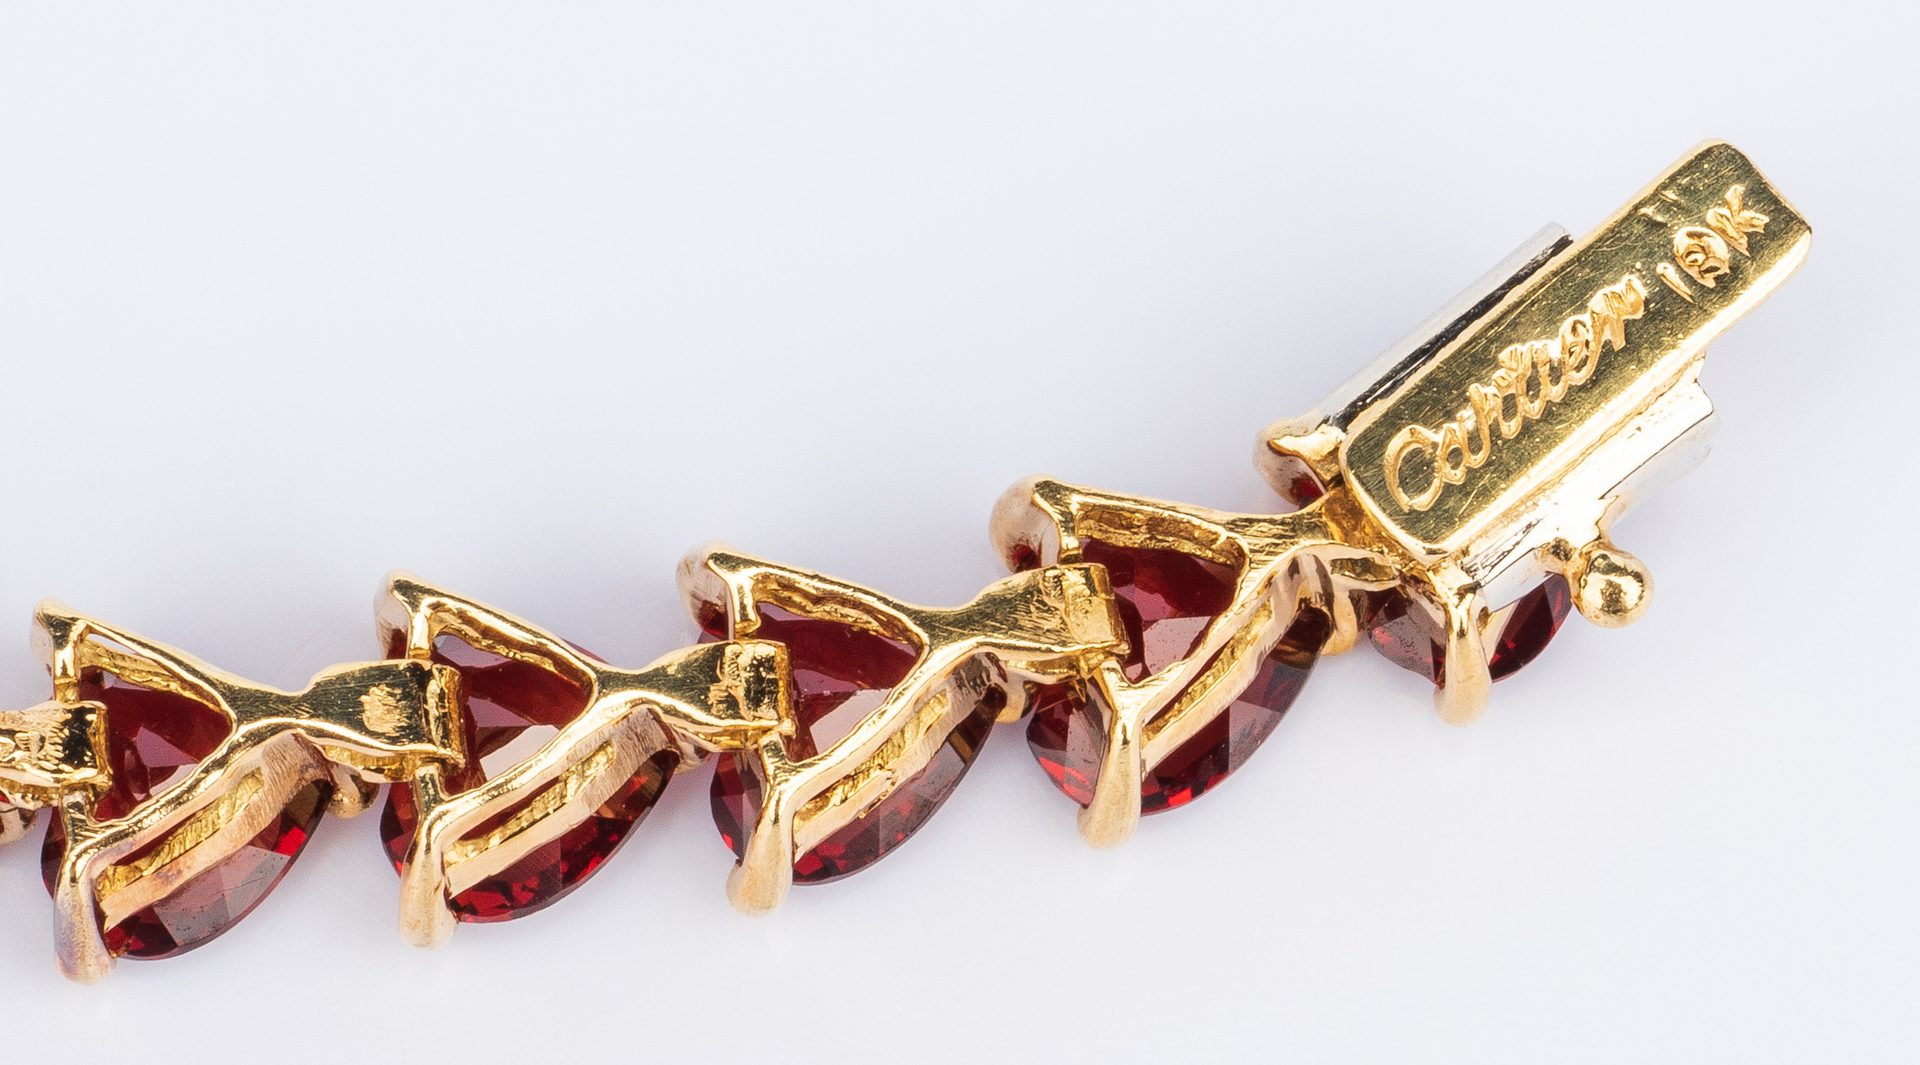 Lot 391: 18K Garnet Bracelet, marked Cartier